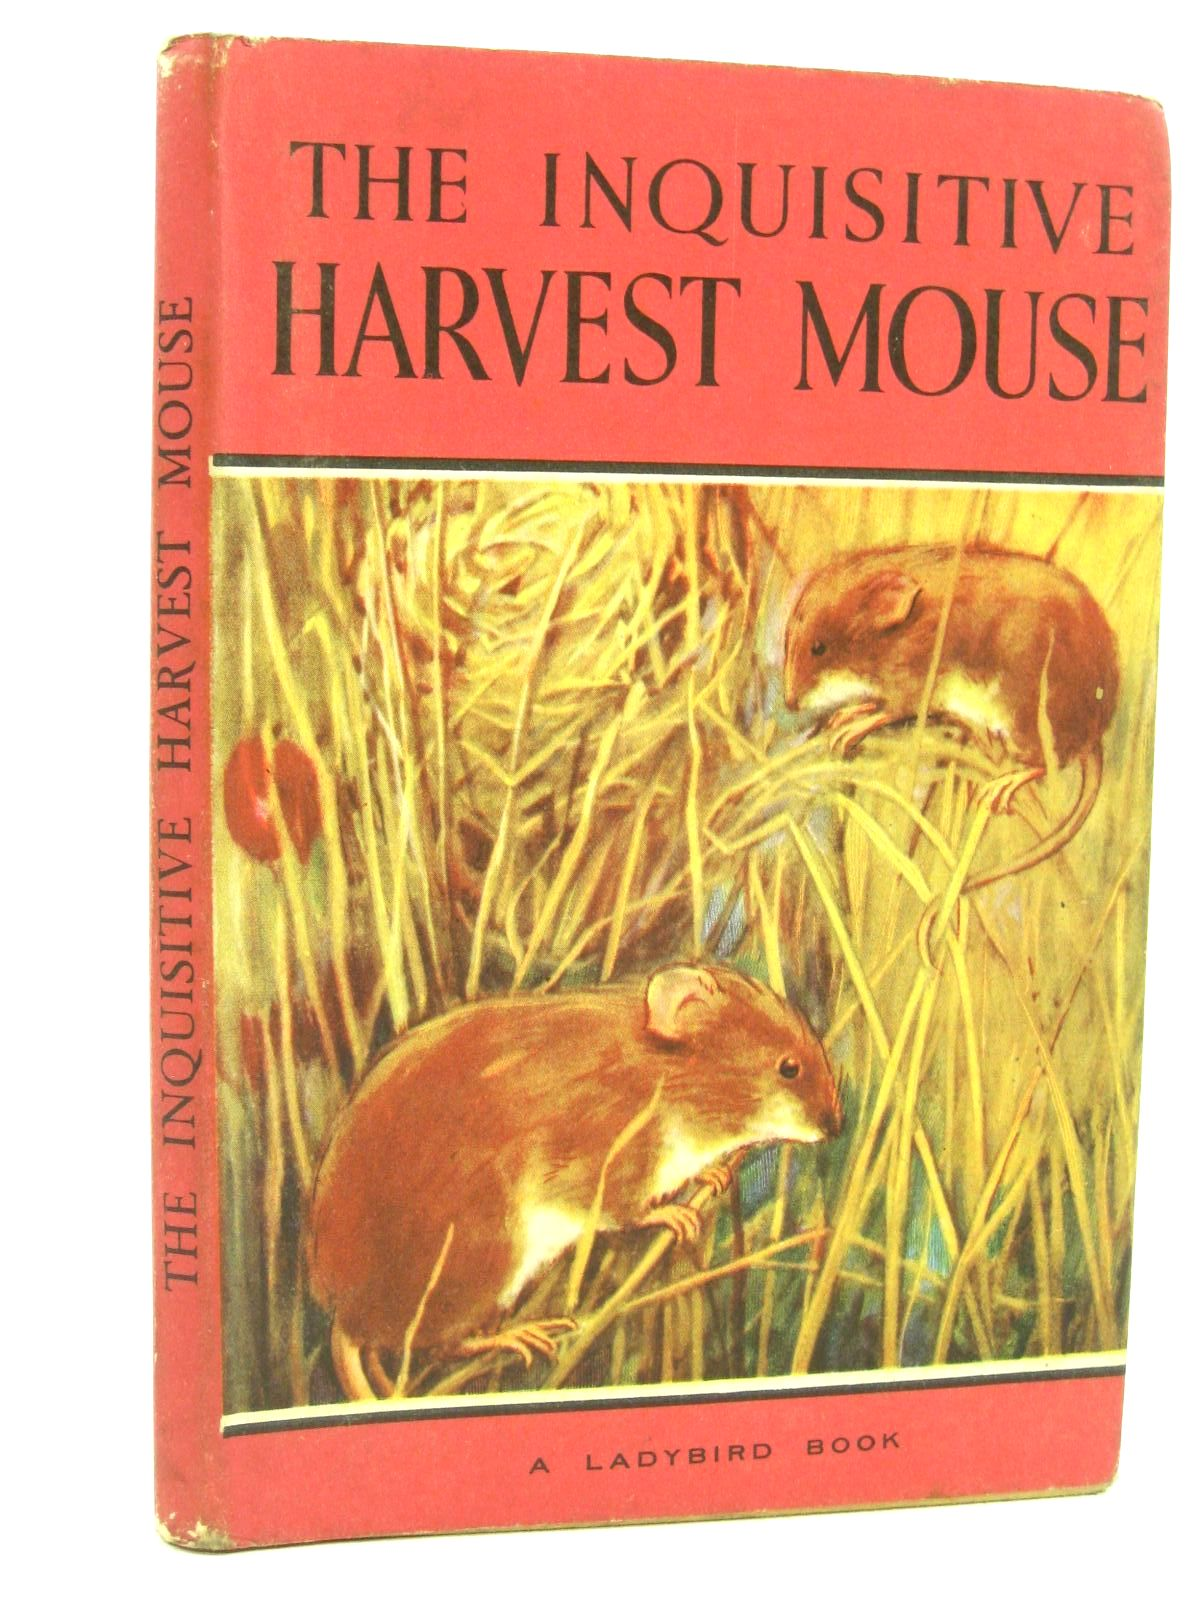 Photo of THE INQUISITIVE HARVEST MOUSE written by Barr, Noel illustrated by Hickling, P.B. published by Wills & Hepworth Ltd. (STOCK CODE: 1316799)  for sale by Stella & Rose's Books